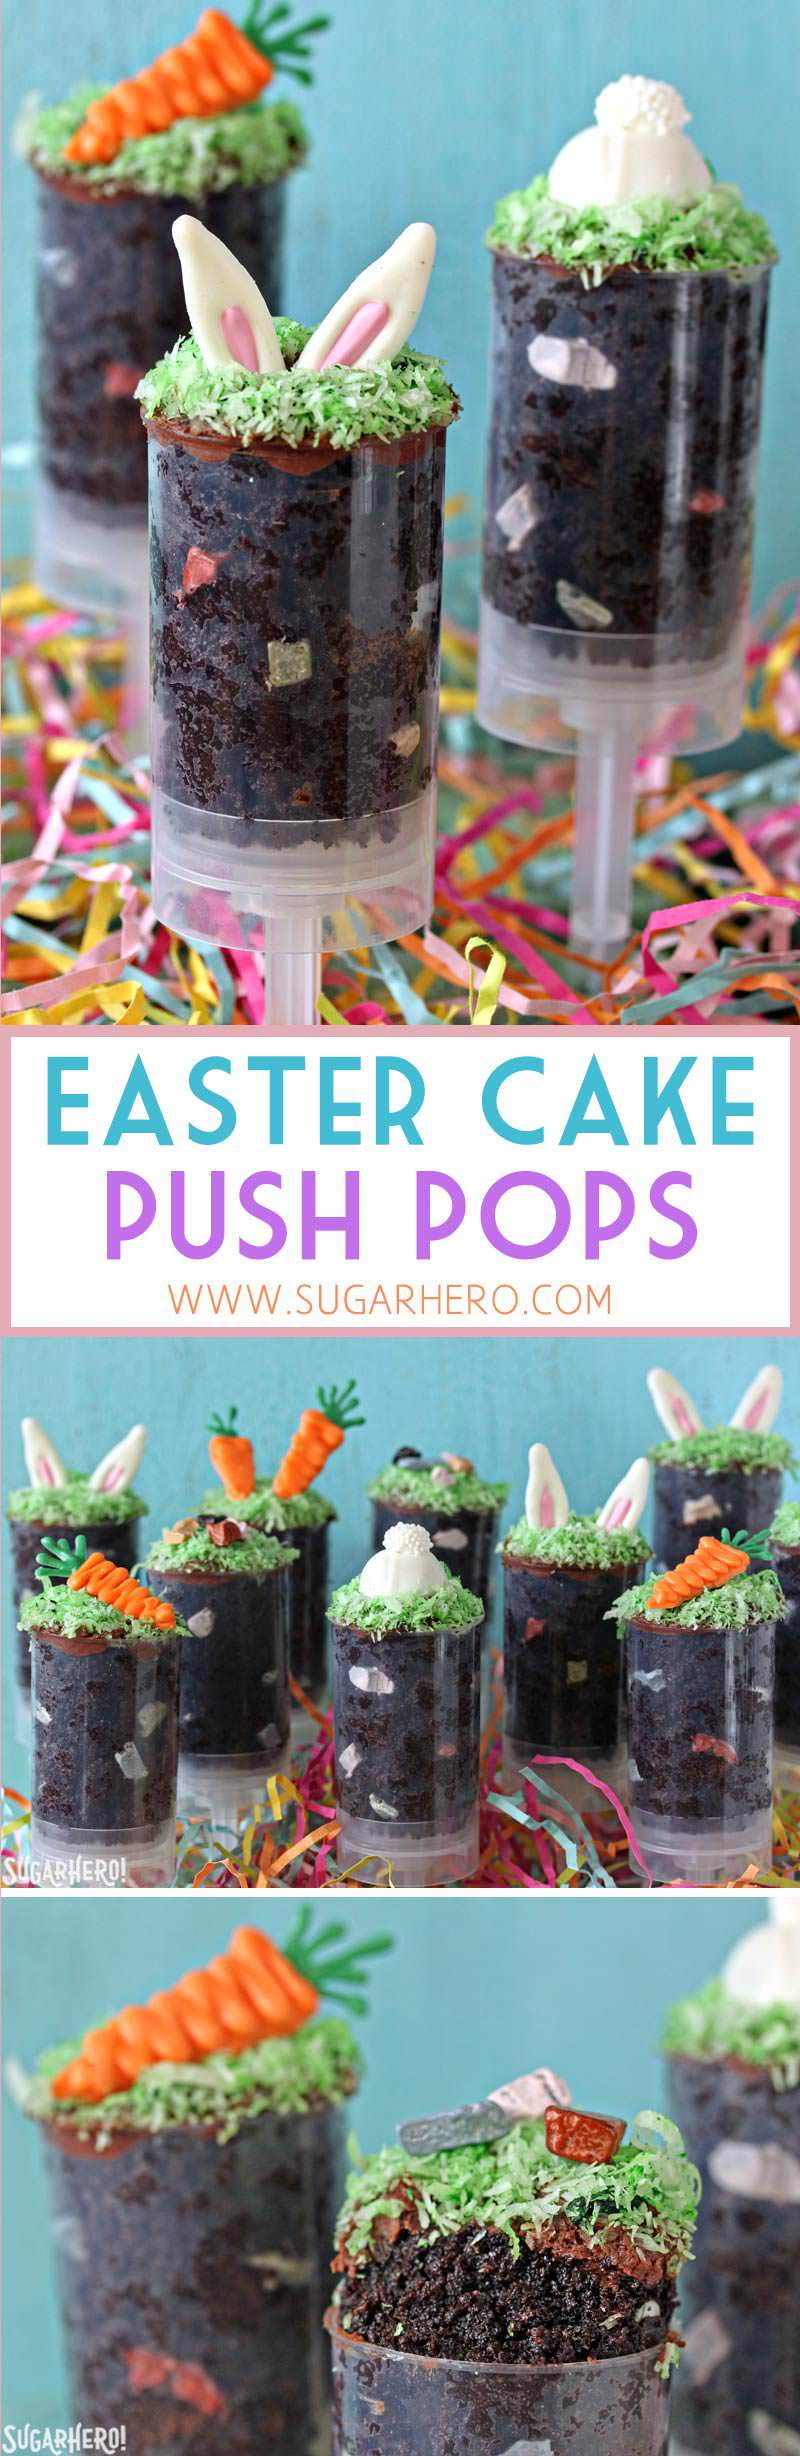 Easter Cake Push Pops - cute cake in a push-pop container, decorated with bunny ears and carrots! | From SugarHero.com